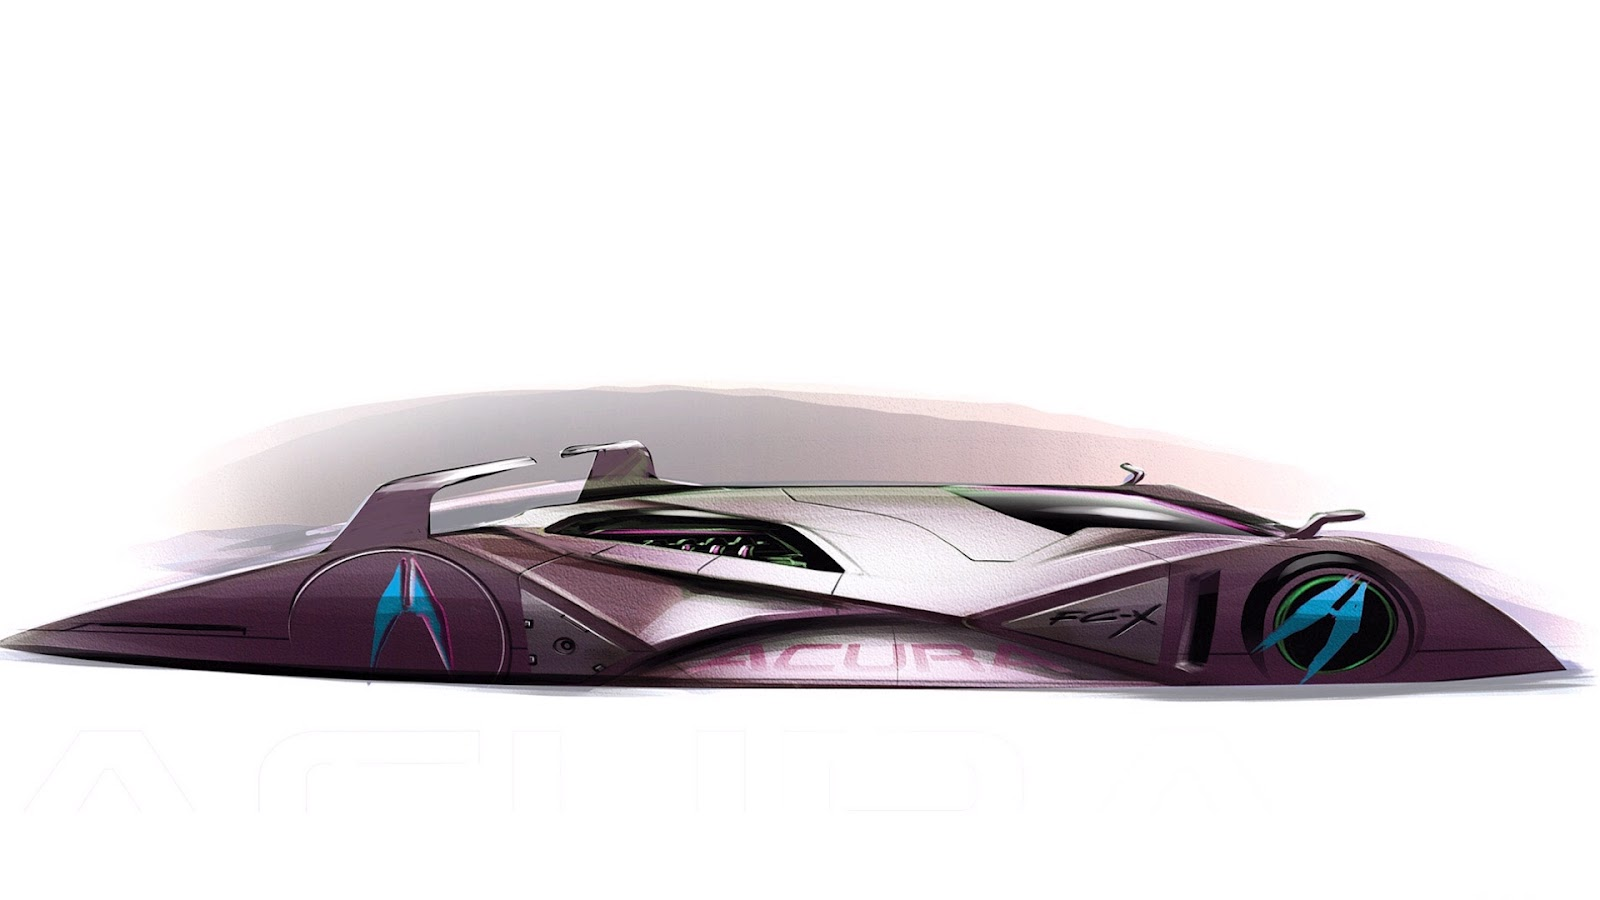 Hd future cars mobile wallpapers - Future cars hd wallpapers ...